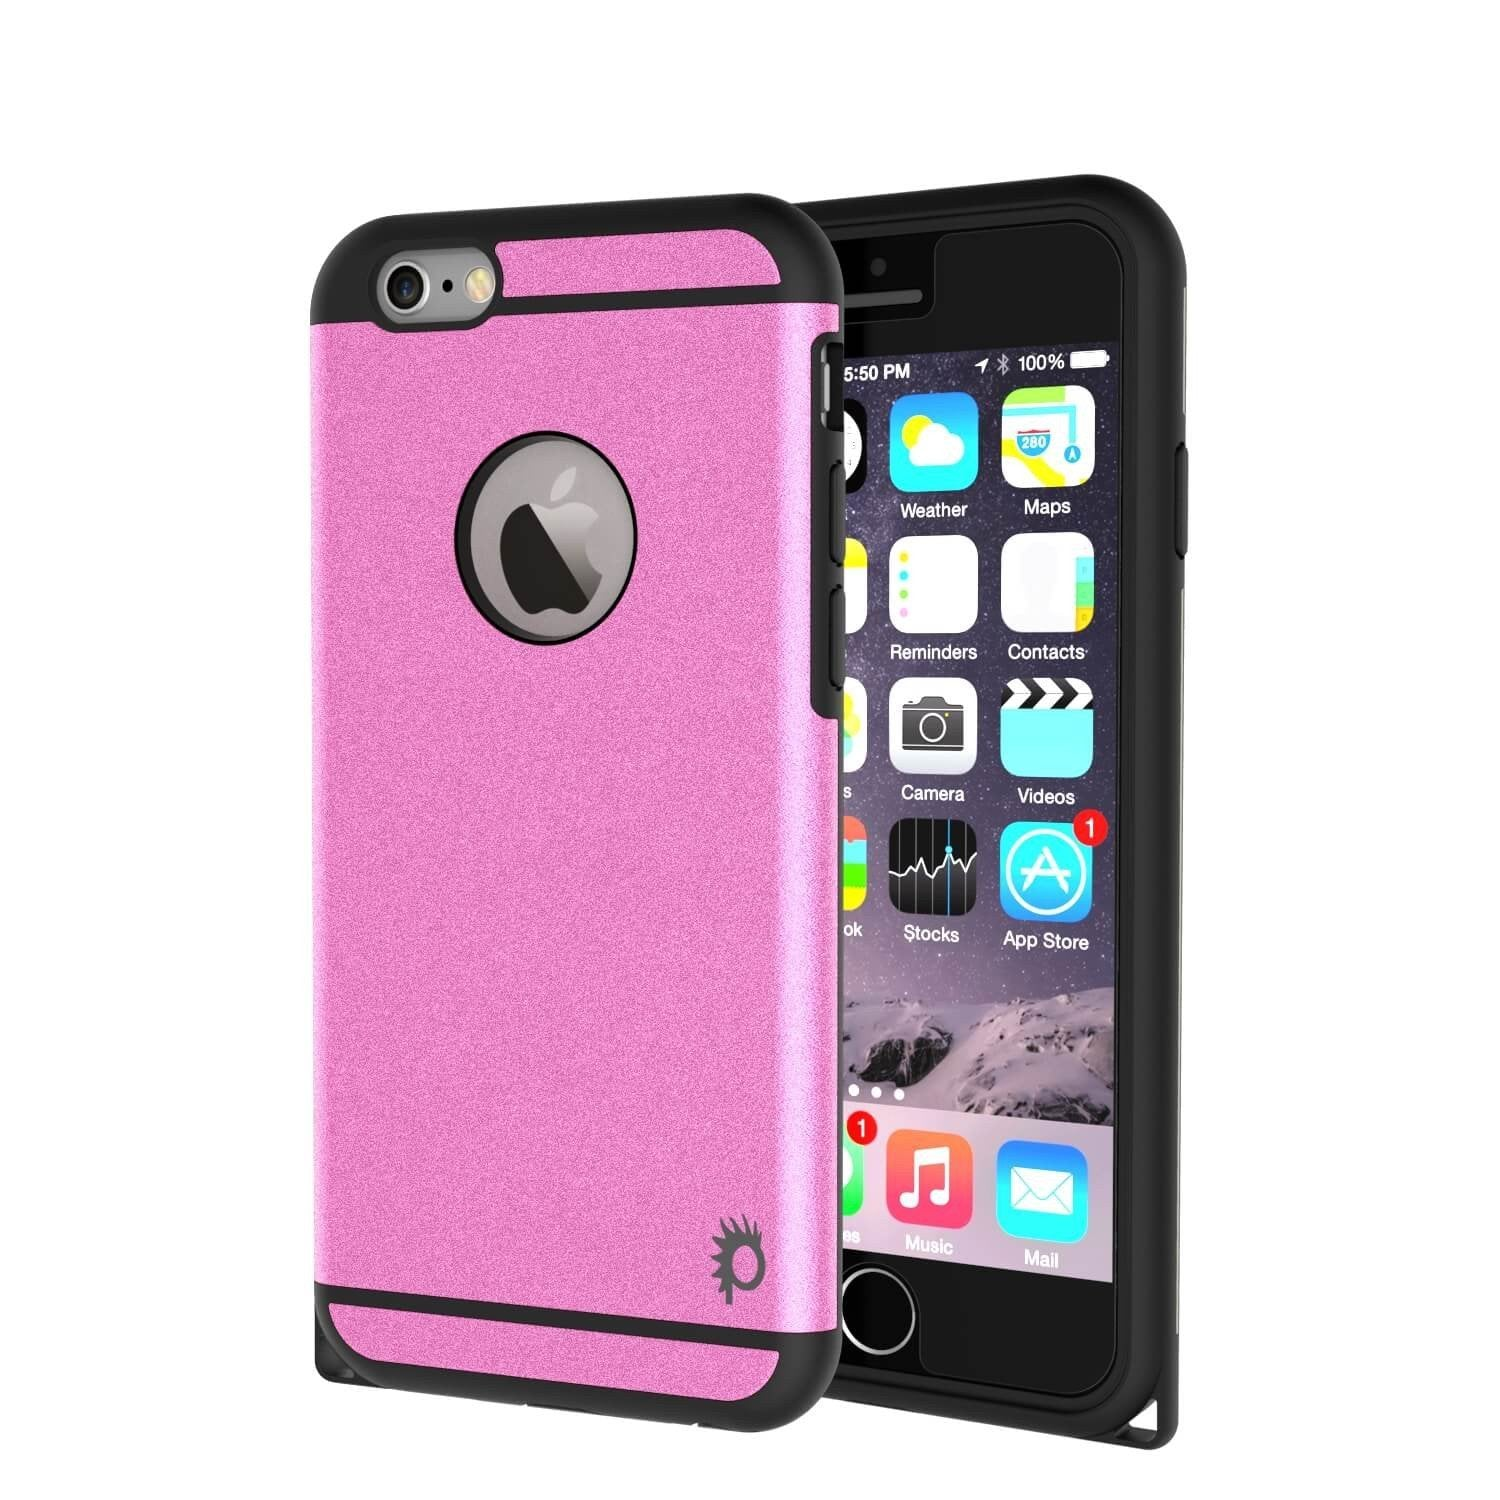 iPhone 5s/5/SE Case PunkCase Galactic Pink Series  Slim w/ Tempered Glass | Lifetime Warranty